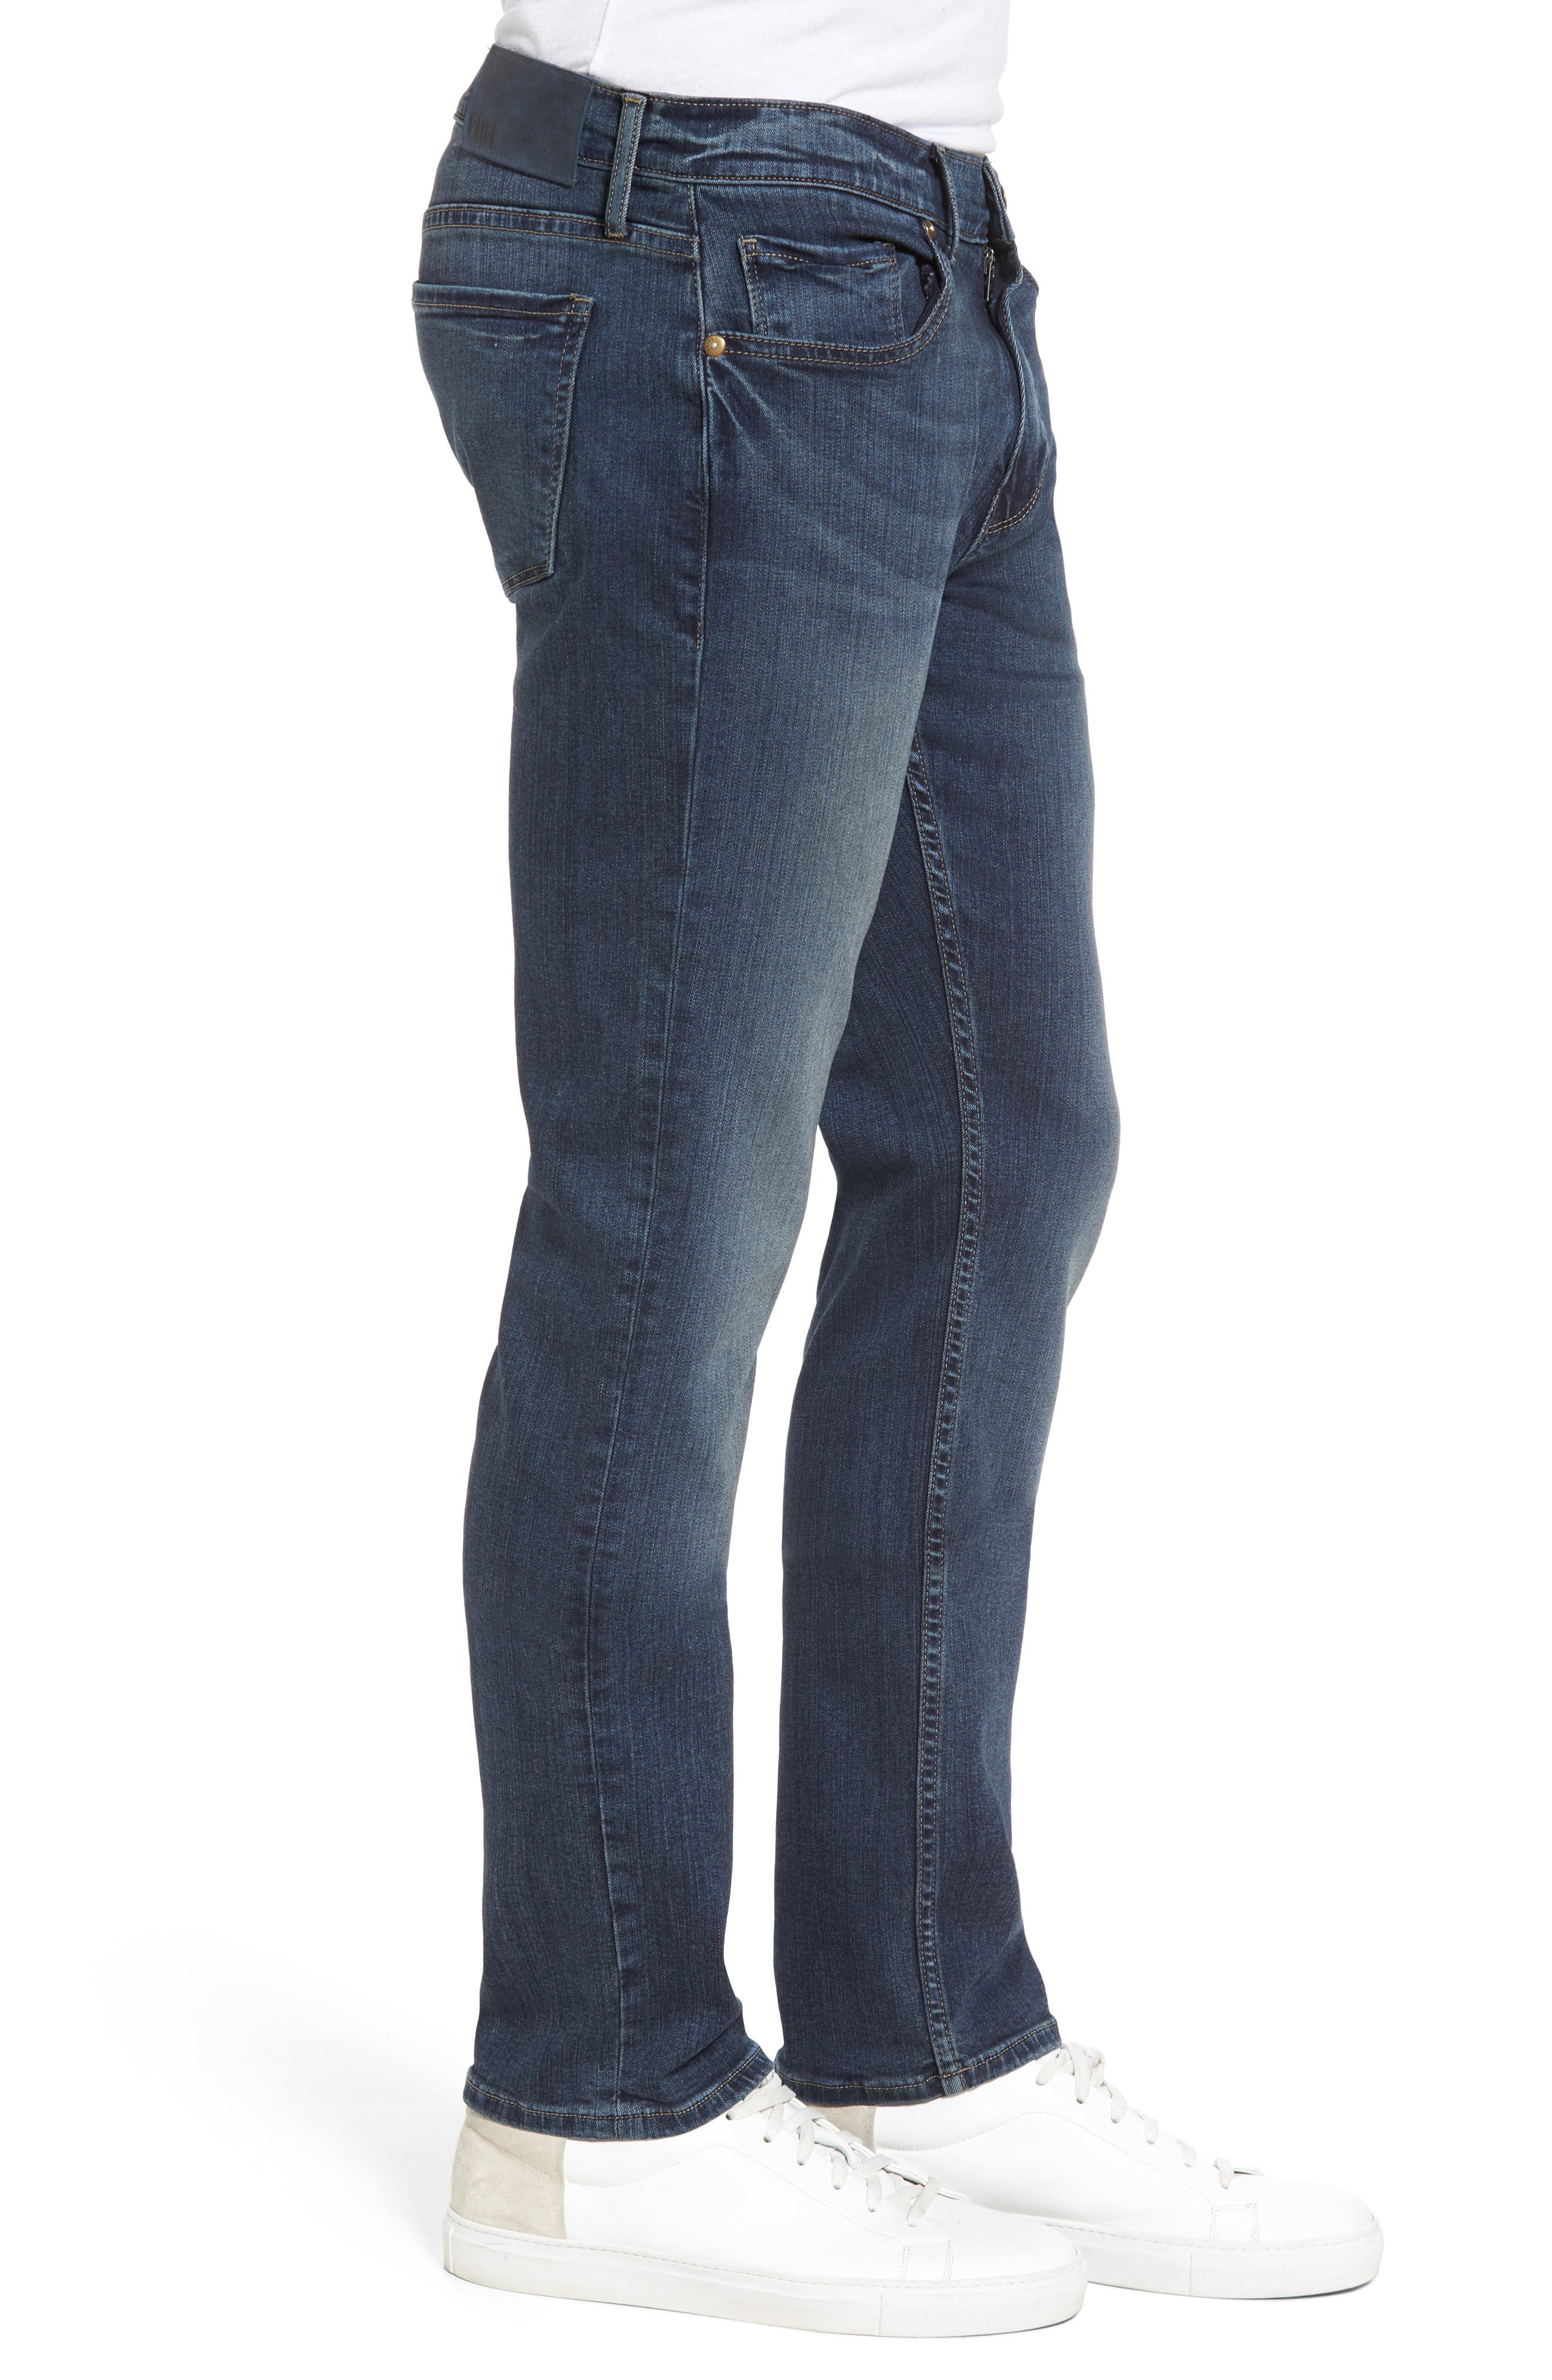 Transcend - Federal Slim Straight Leg Jeans,                             Alternate thumbnail 3, color,                             400